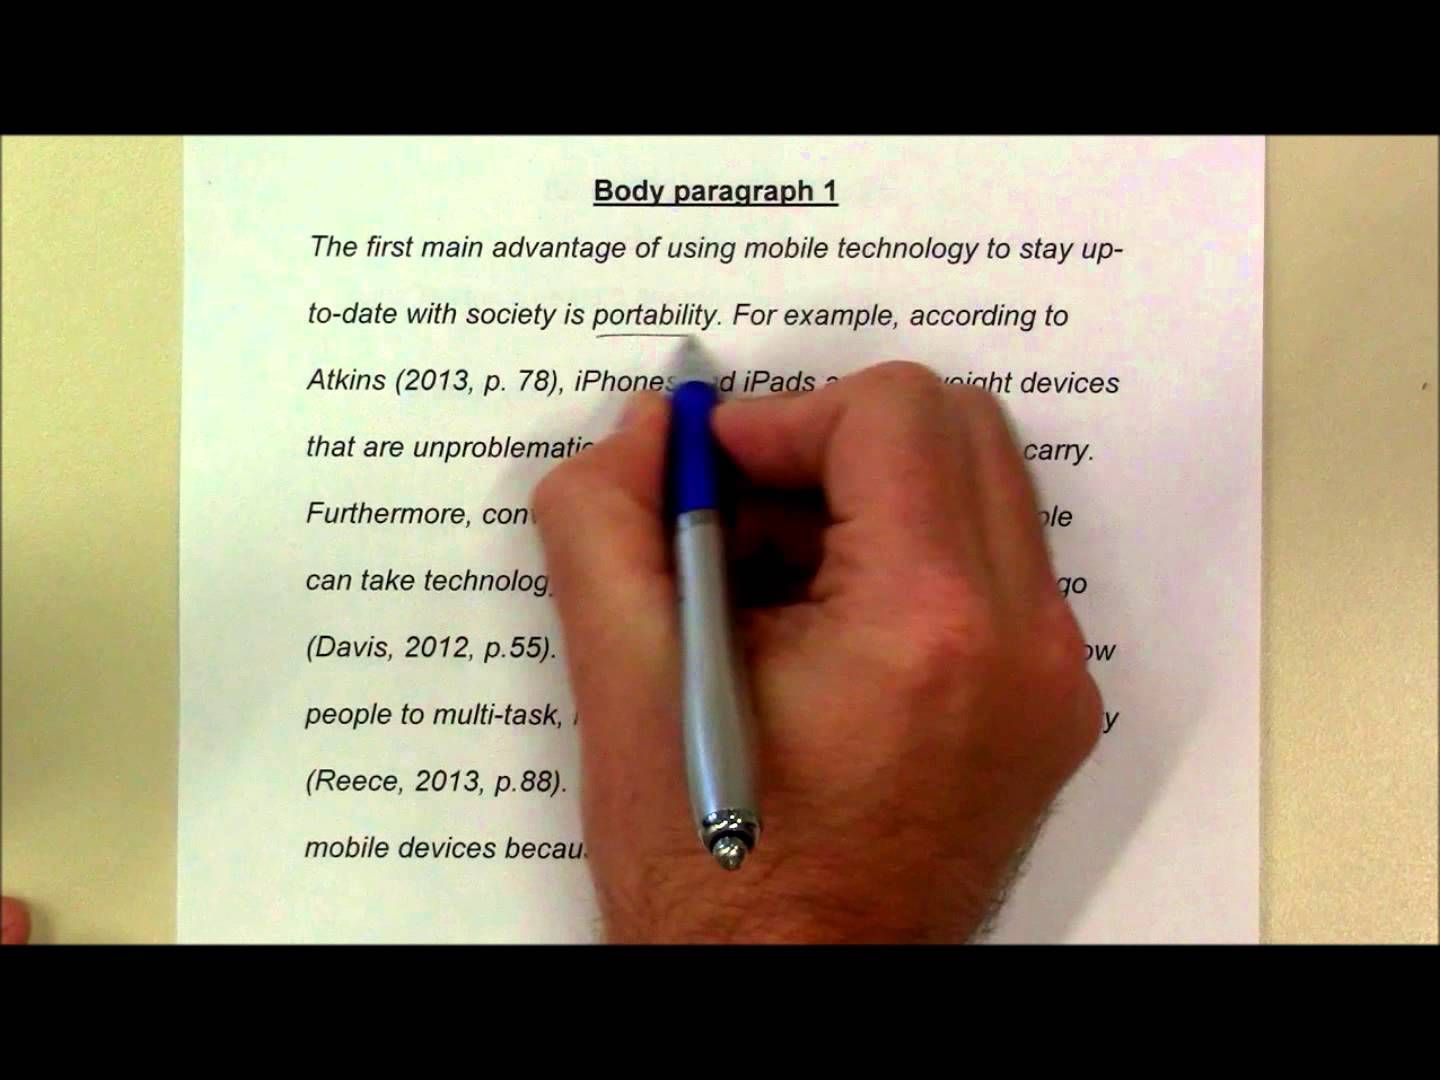 How to write a body paragraph Body paragraphs, Online